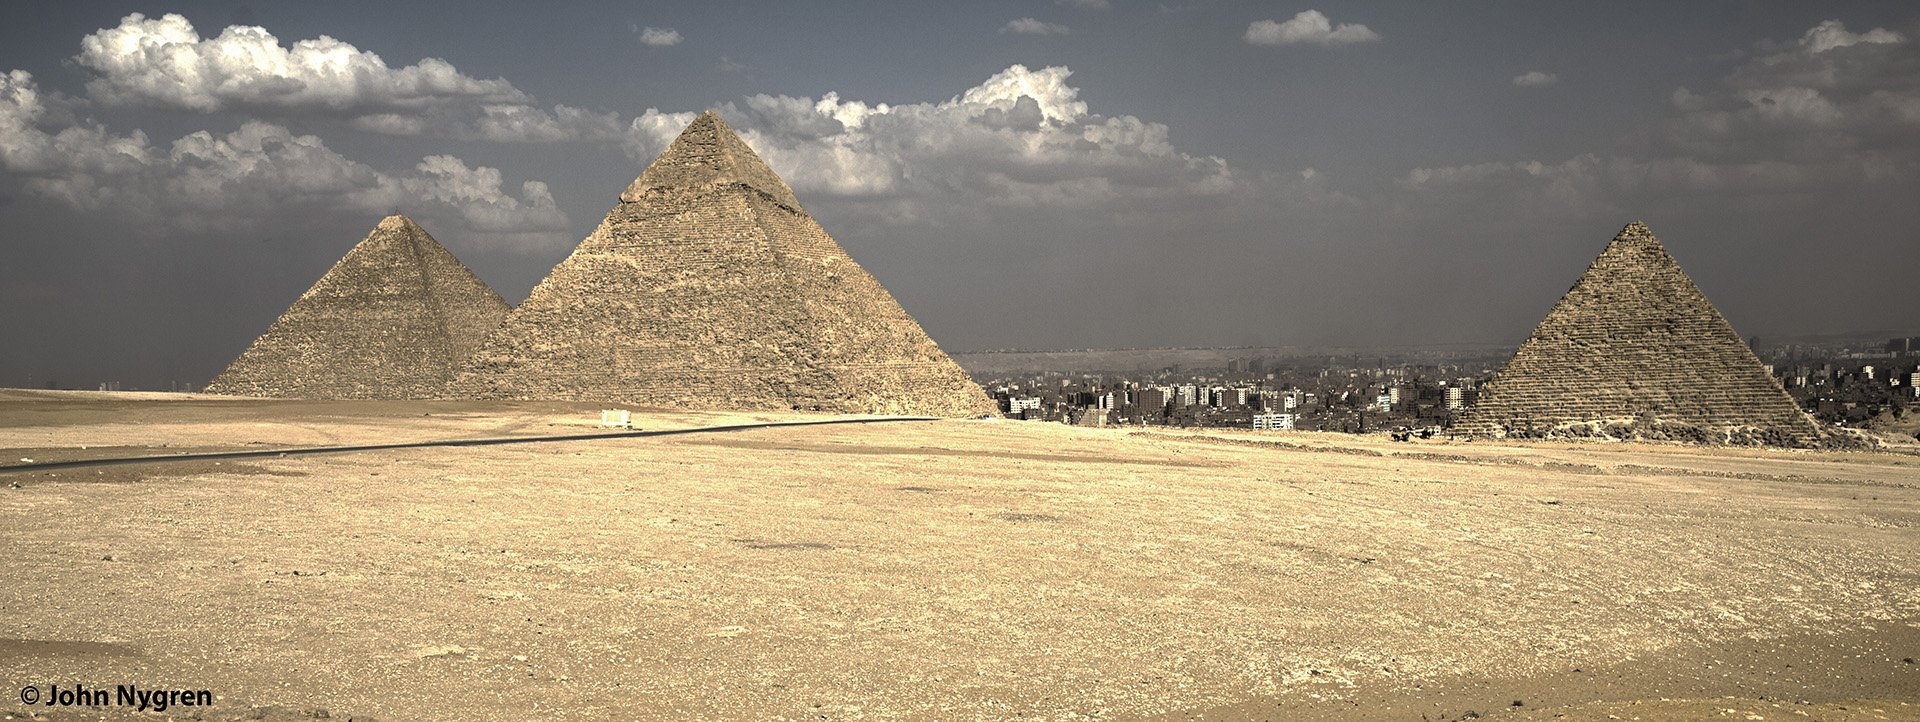 Pyramids and Cairo_HDR2.jpg